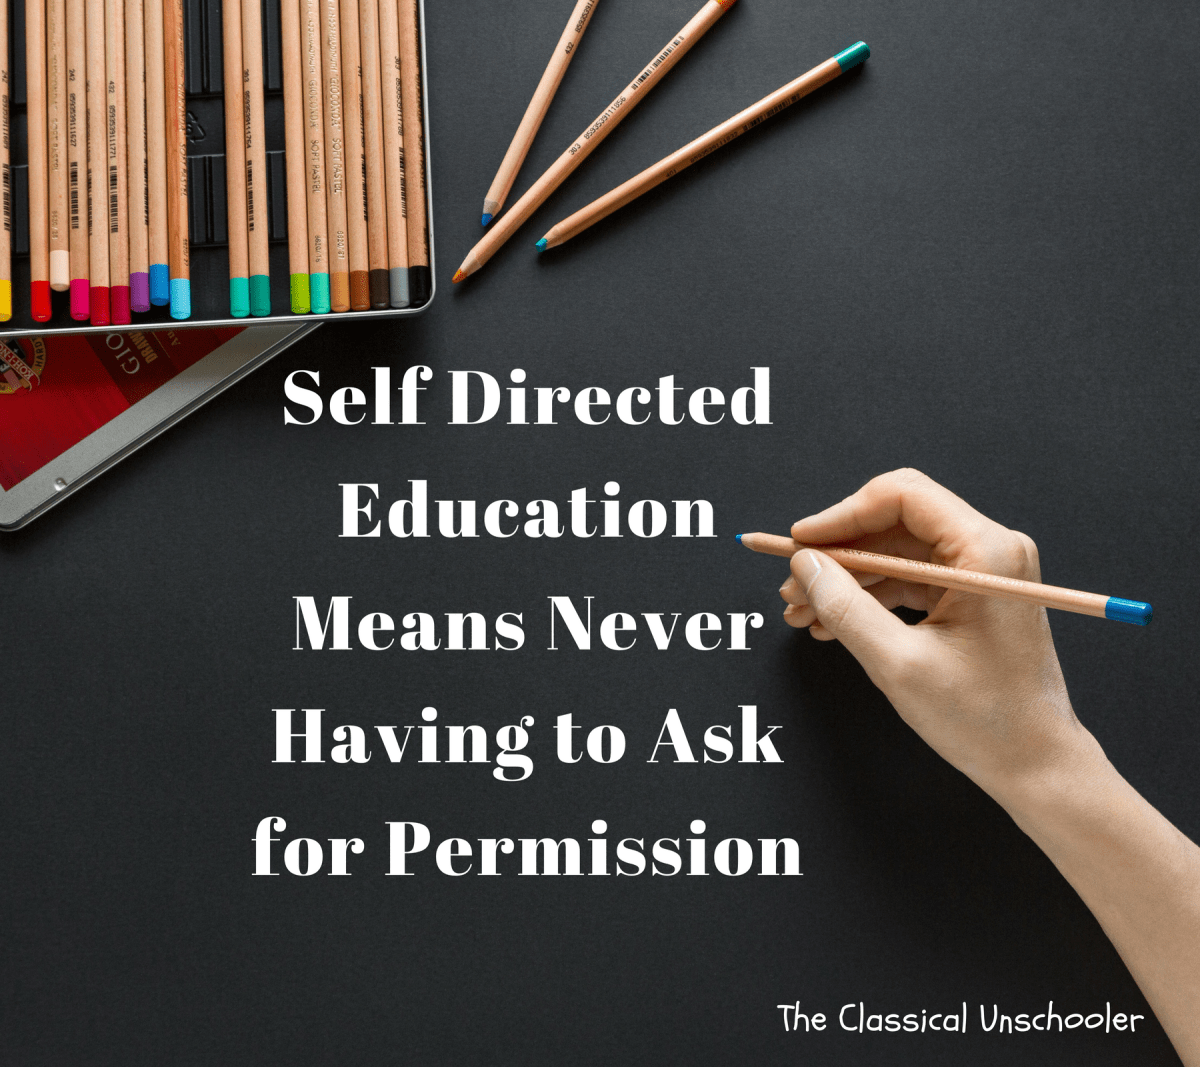 Self Directed Education Means Never Having to Ask for Permission